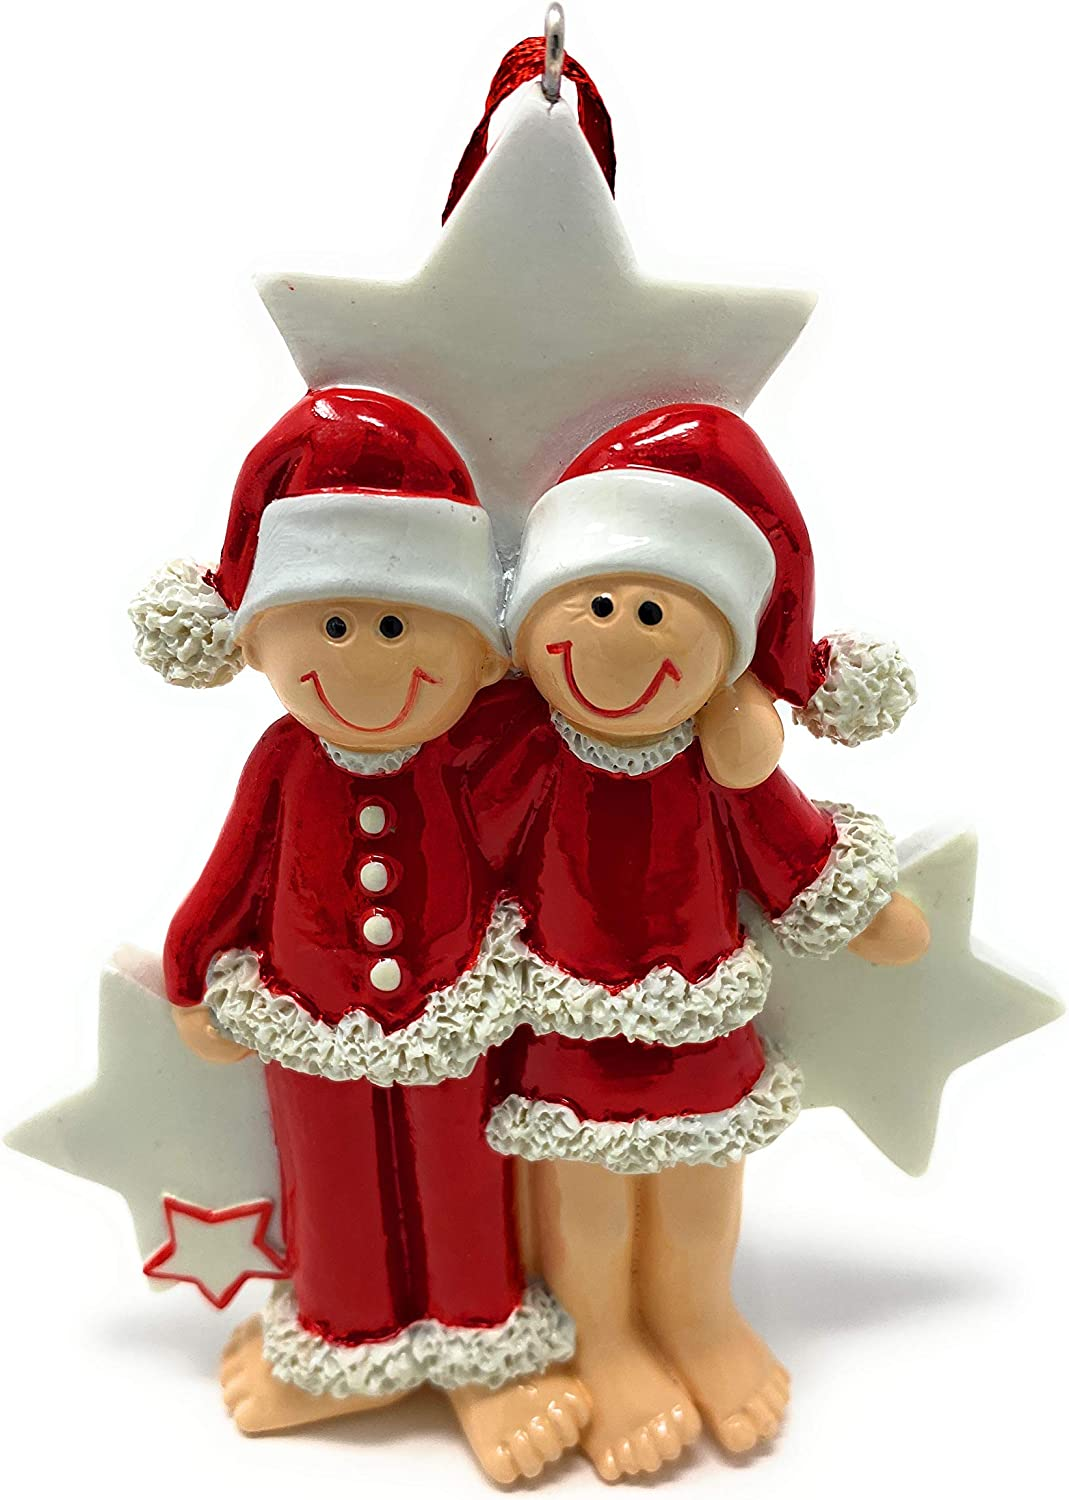 First Christmas 2020 Ornament Resin Amazon.com: First Christmas Ornaments 2020 Wedding Gifts Married